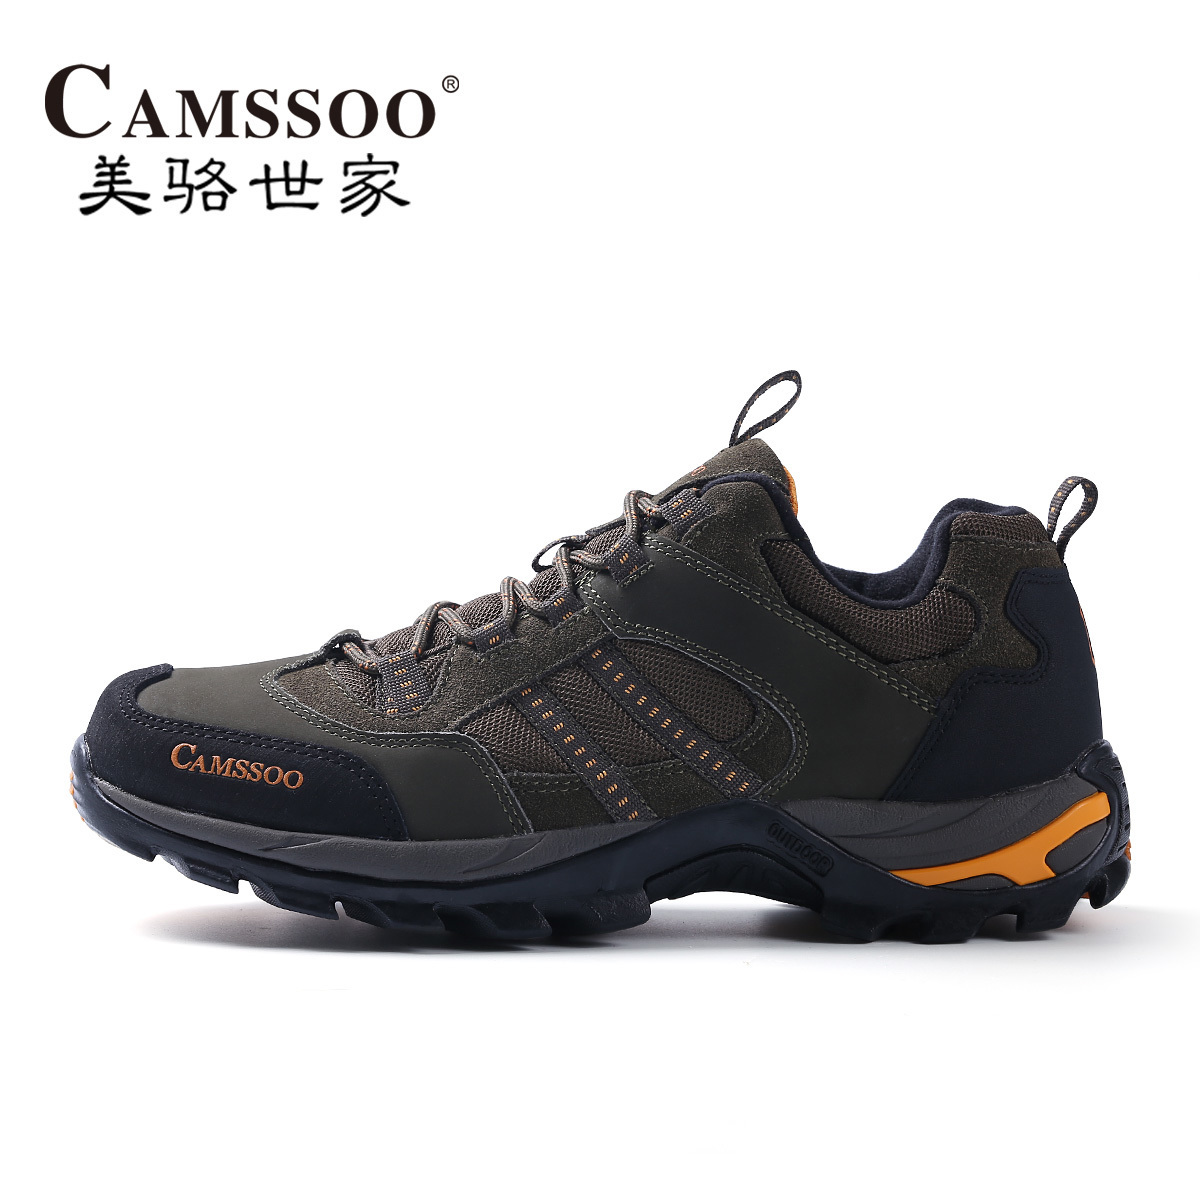 The United States Luo Shi family new outdoor climbing shoes low to help women outdoor shoes breathable casual hiking shoes non-slip wear men's shoes